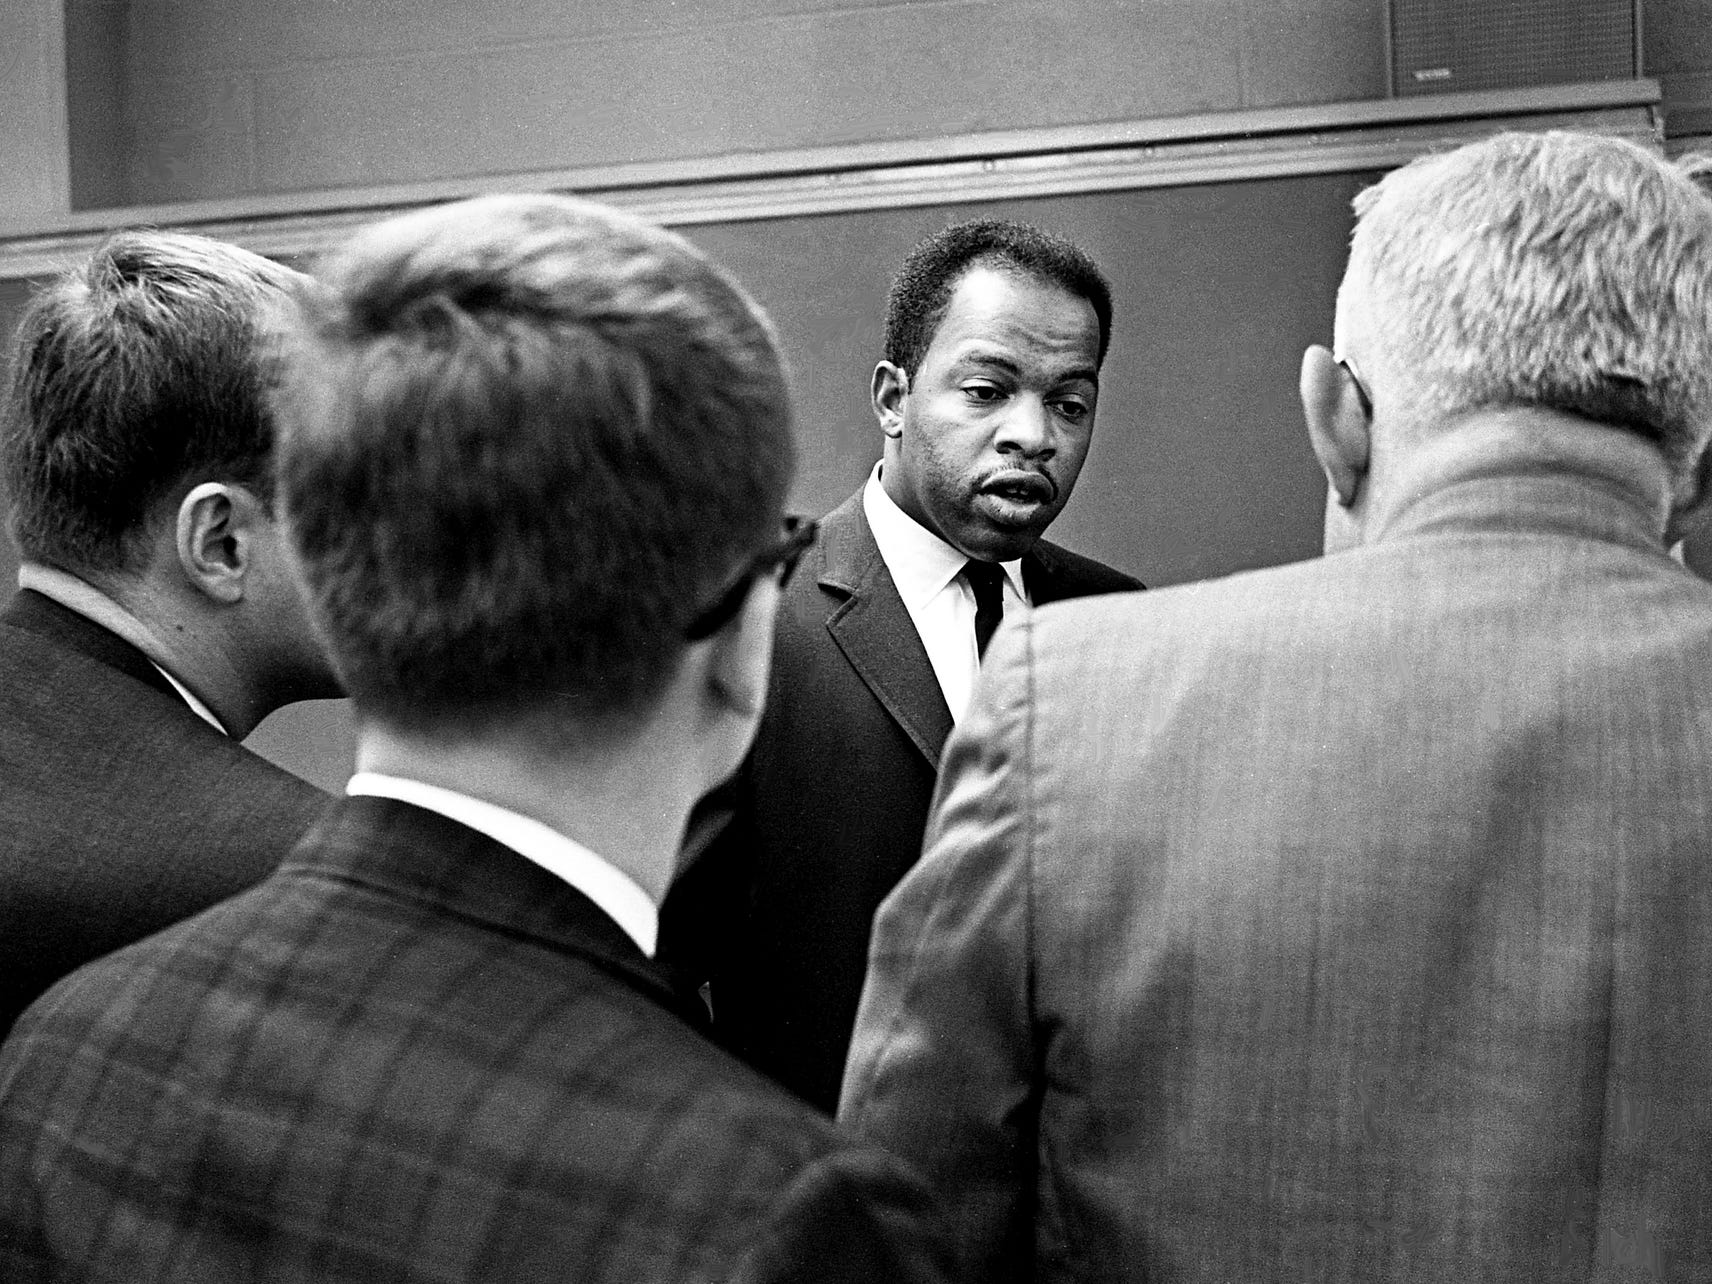 The Rev. John Lewis, center, answers questions after speaking to students and faculty of Vanderbilt University divinity school on campus May 3, 1968. Lewis was head of the Student Nonviolent Coordinating Committee until early 1966 when he was ousted in favor of Stokely Carmichael's more militant stance.